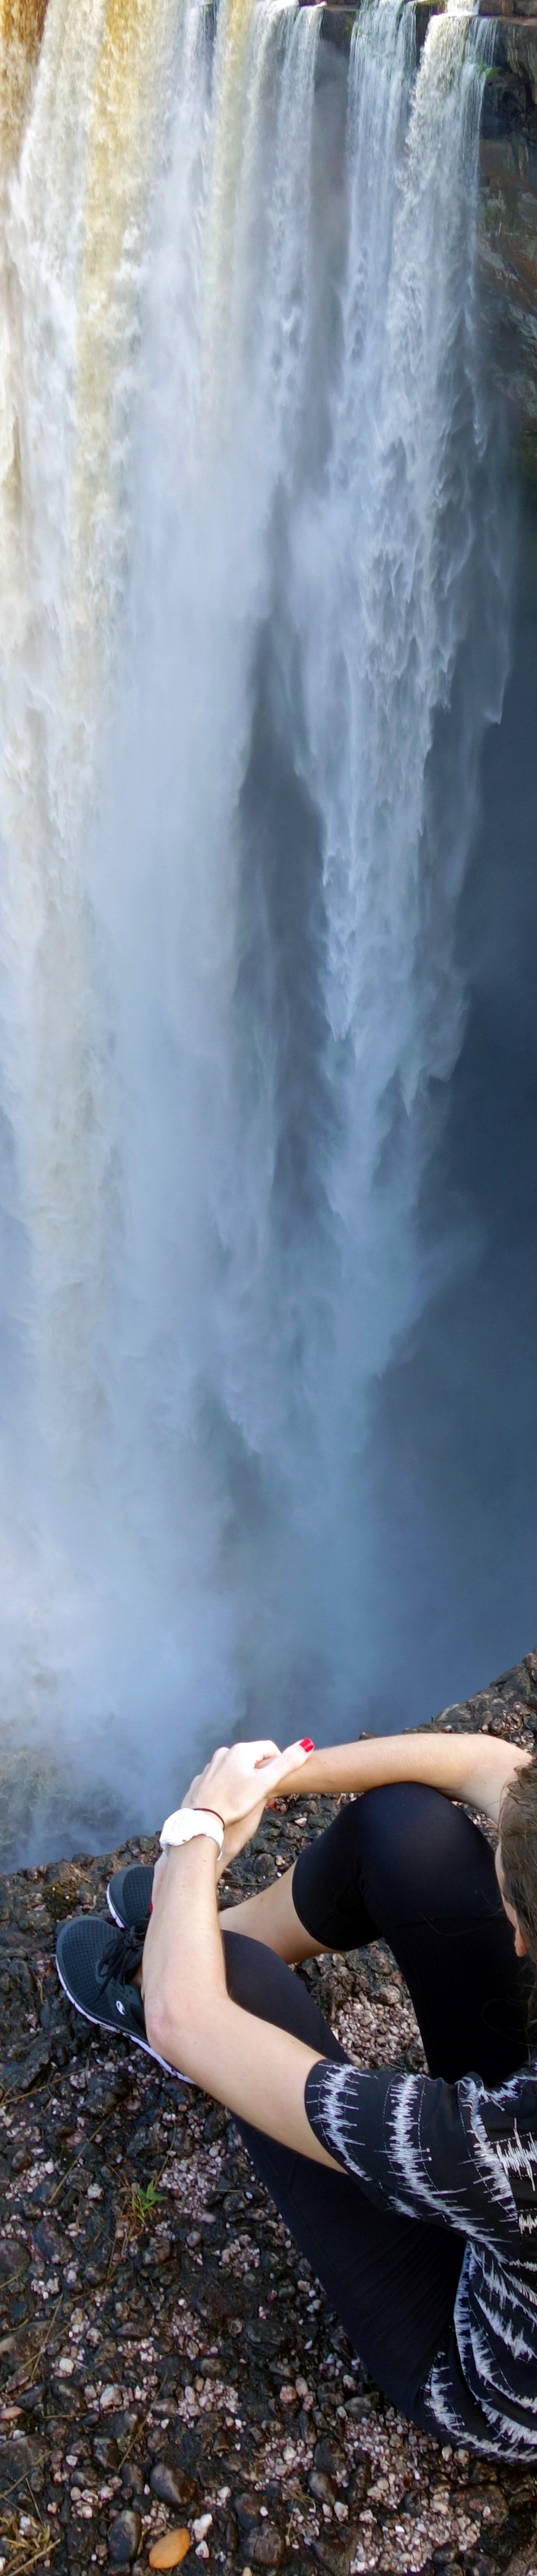 Kaieteur Falls | Guyana | The Travel Medley